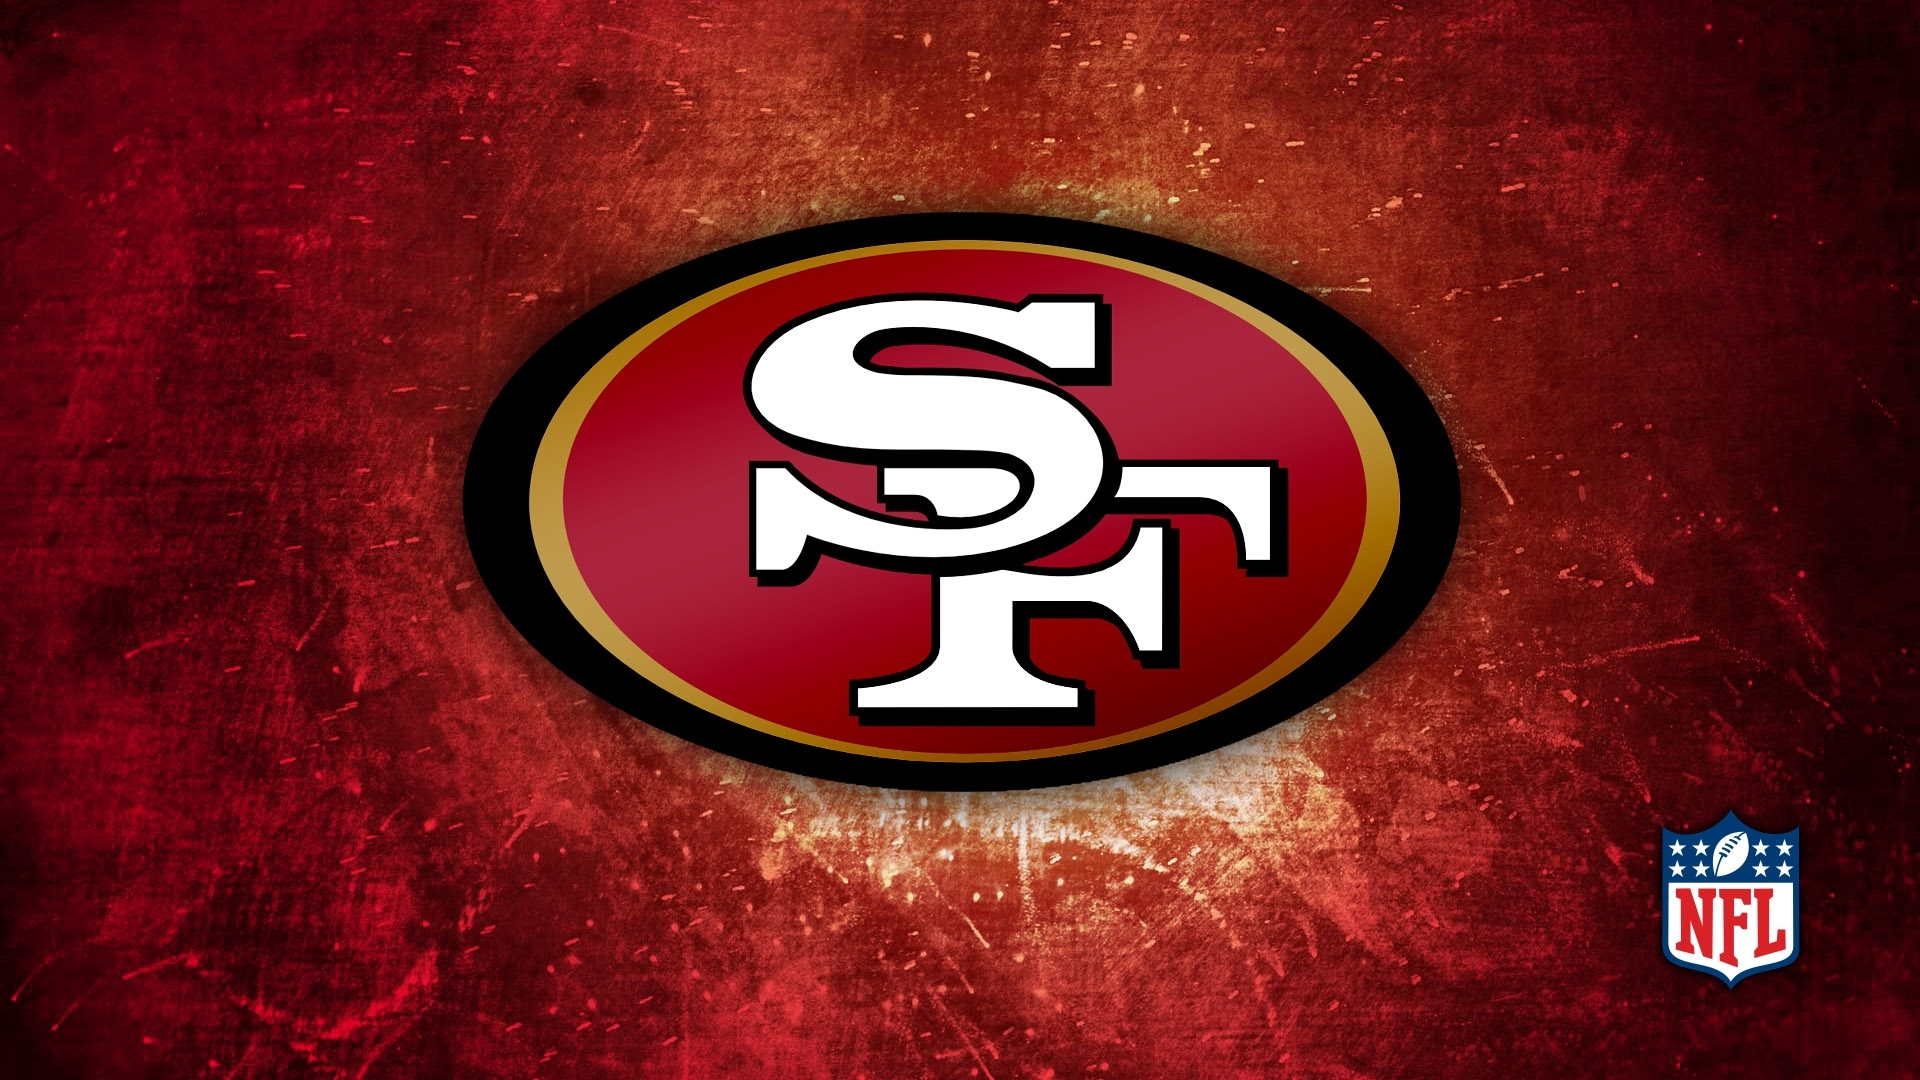 san francisco 49ers logo desktop wallpaper 55987 1920x1080 px